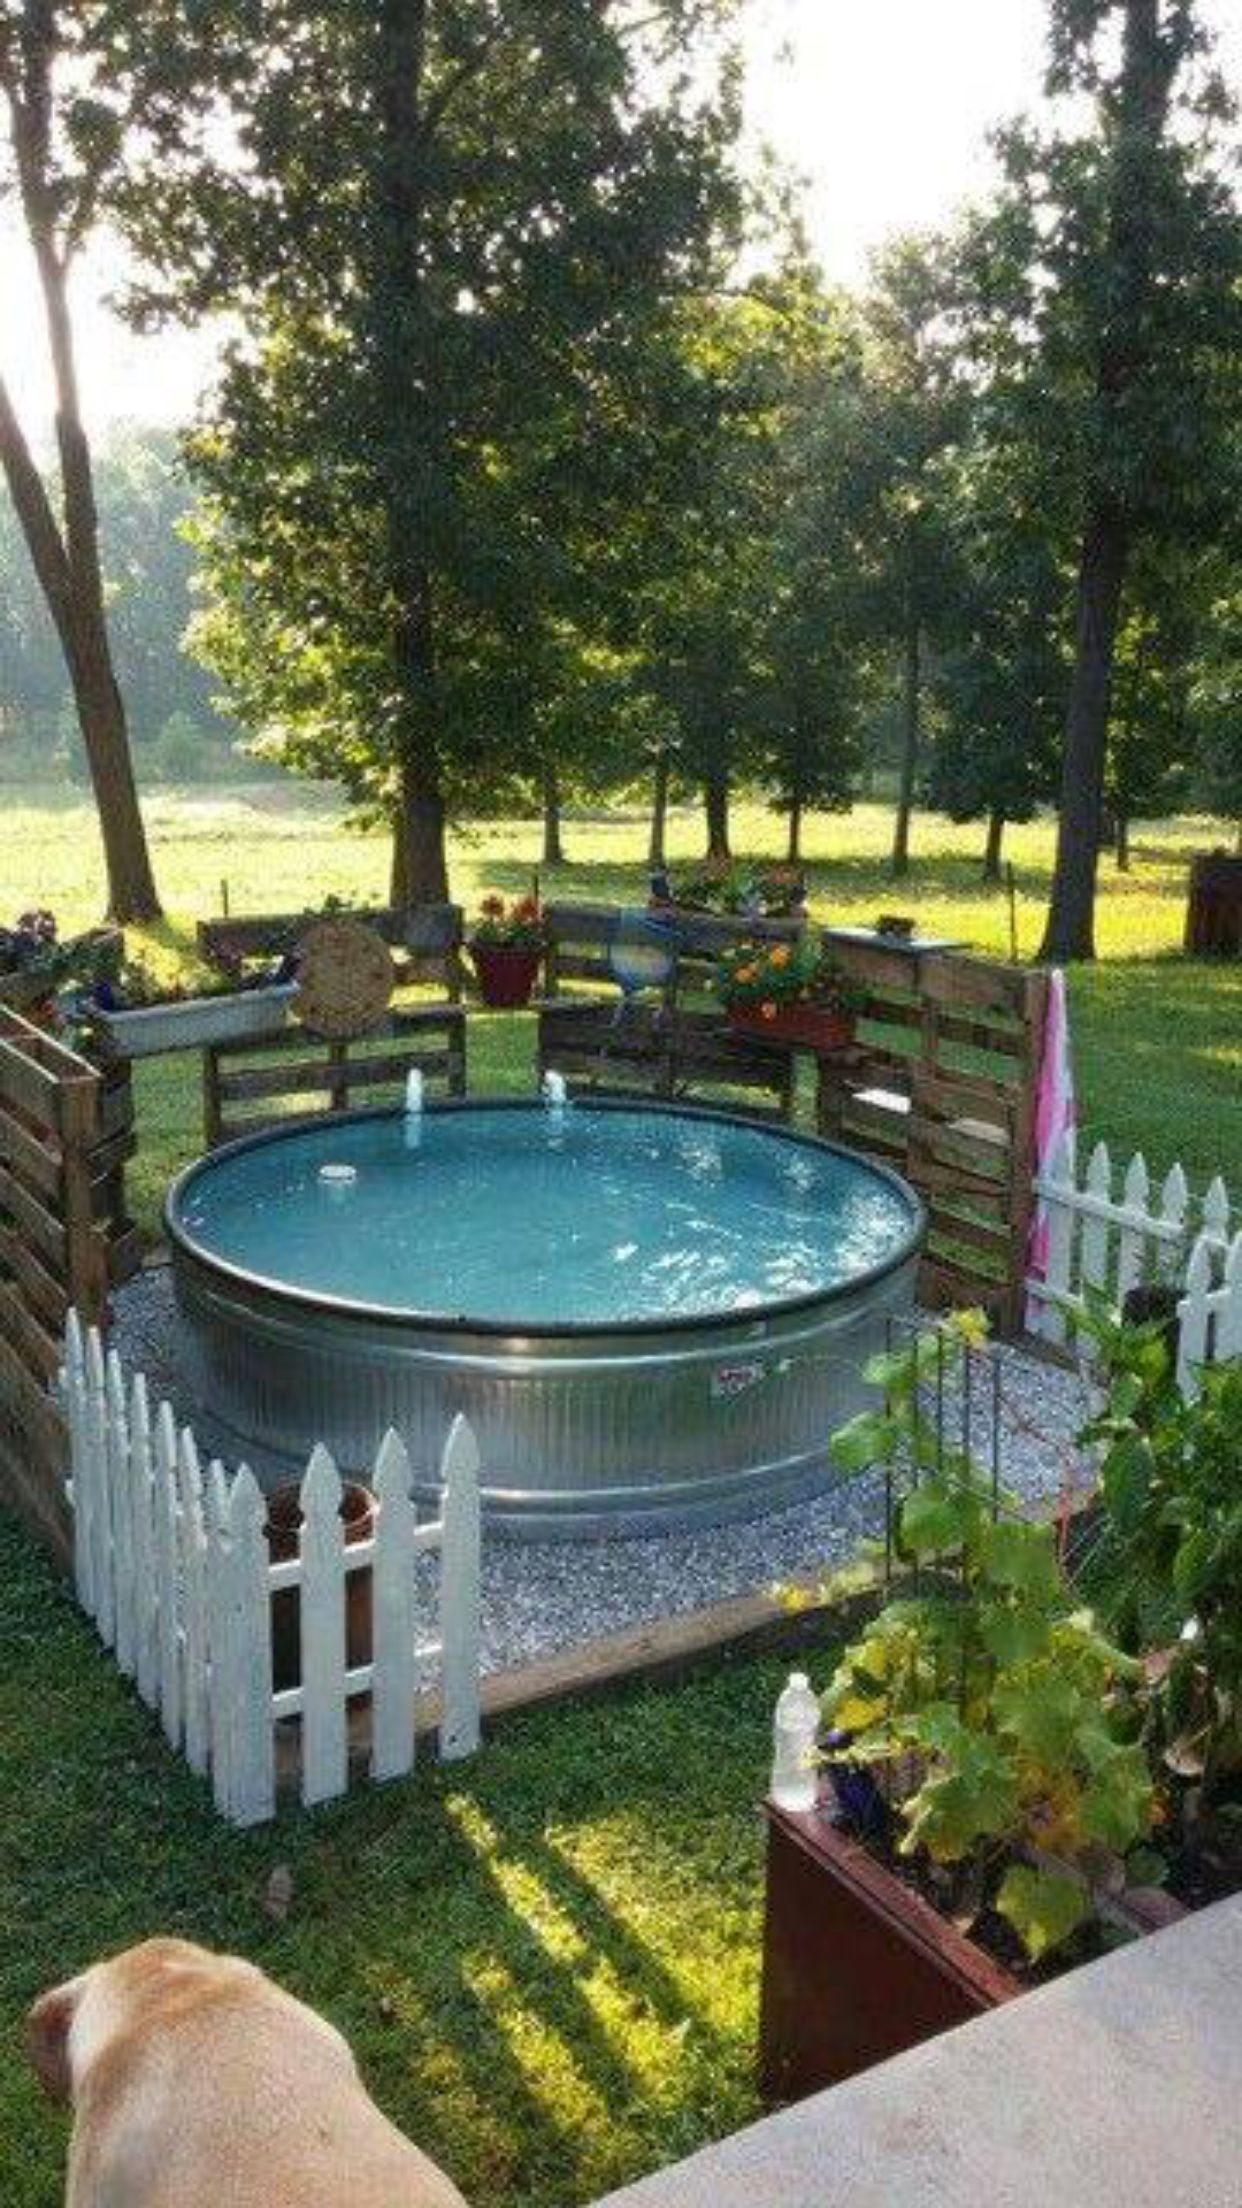 Hot tub water trough ideas | Ideas for the House | Pinterest | Water ...